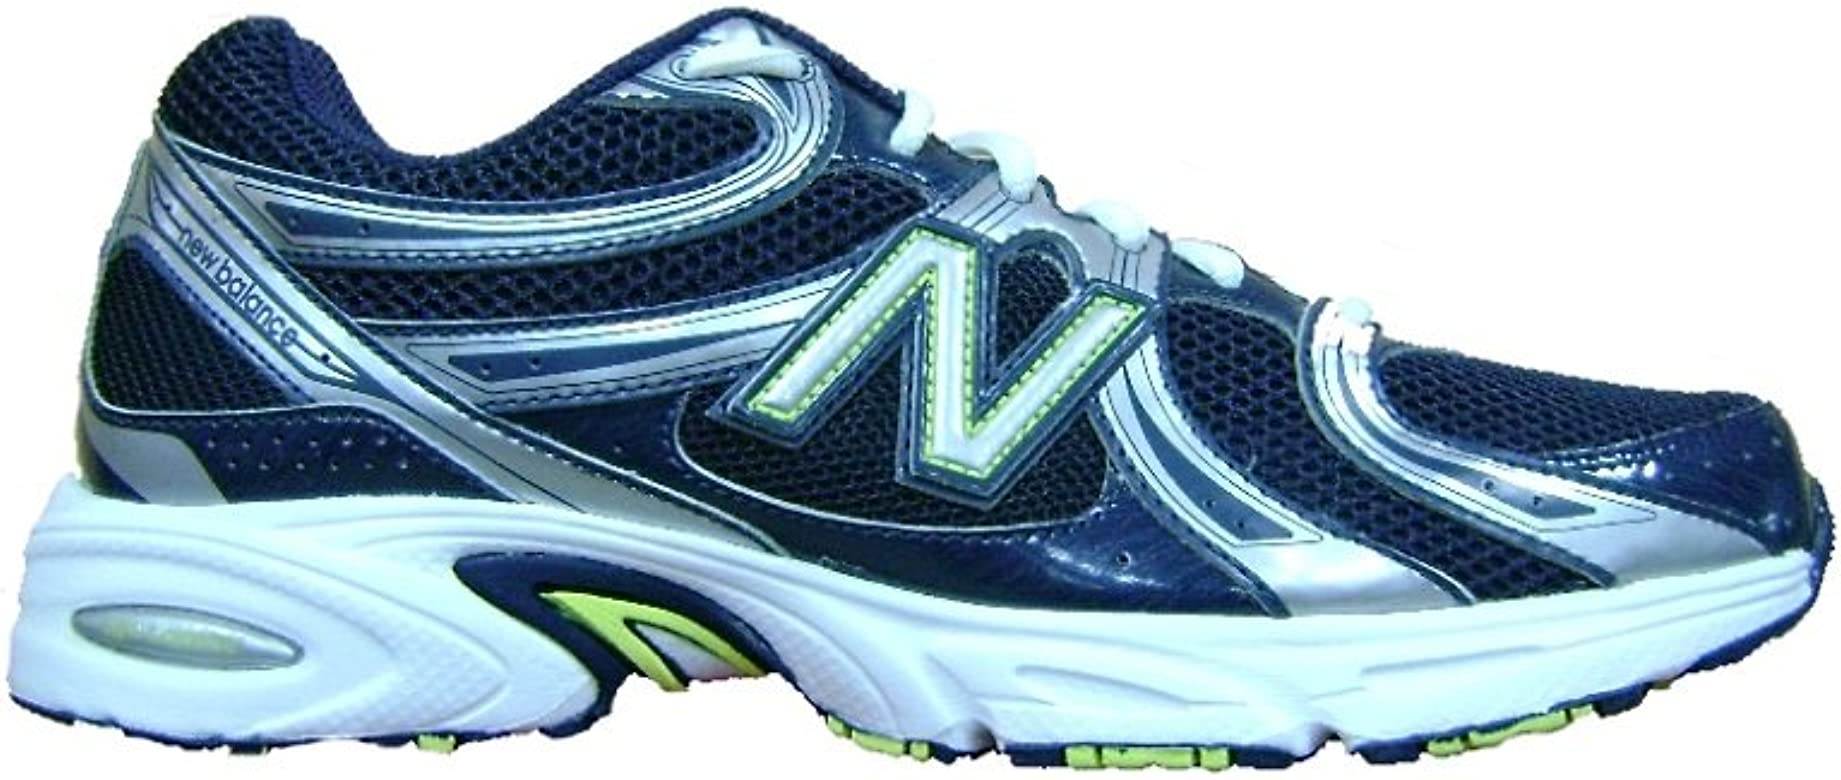 exclusive range differently new images of Amazon.com | New Balance Men's 470 Running Shoes (13 4E ...